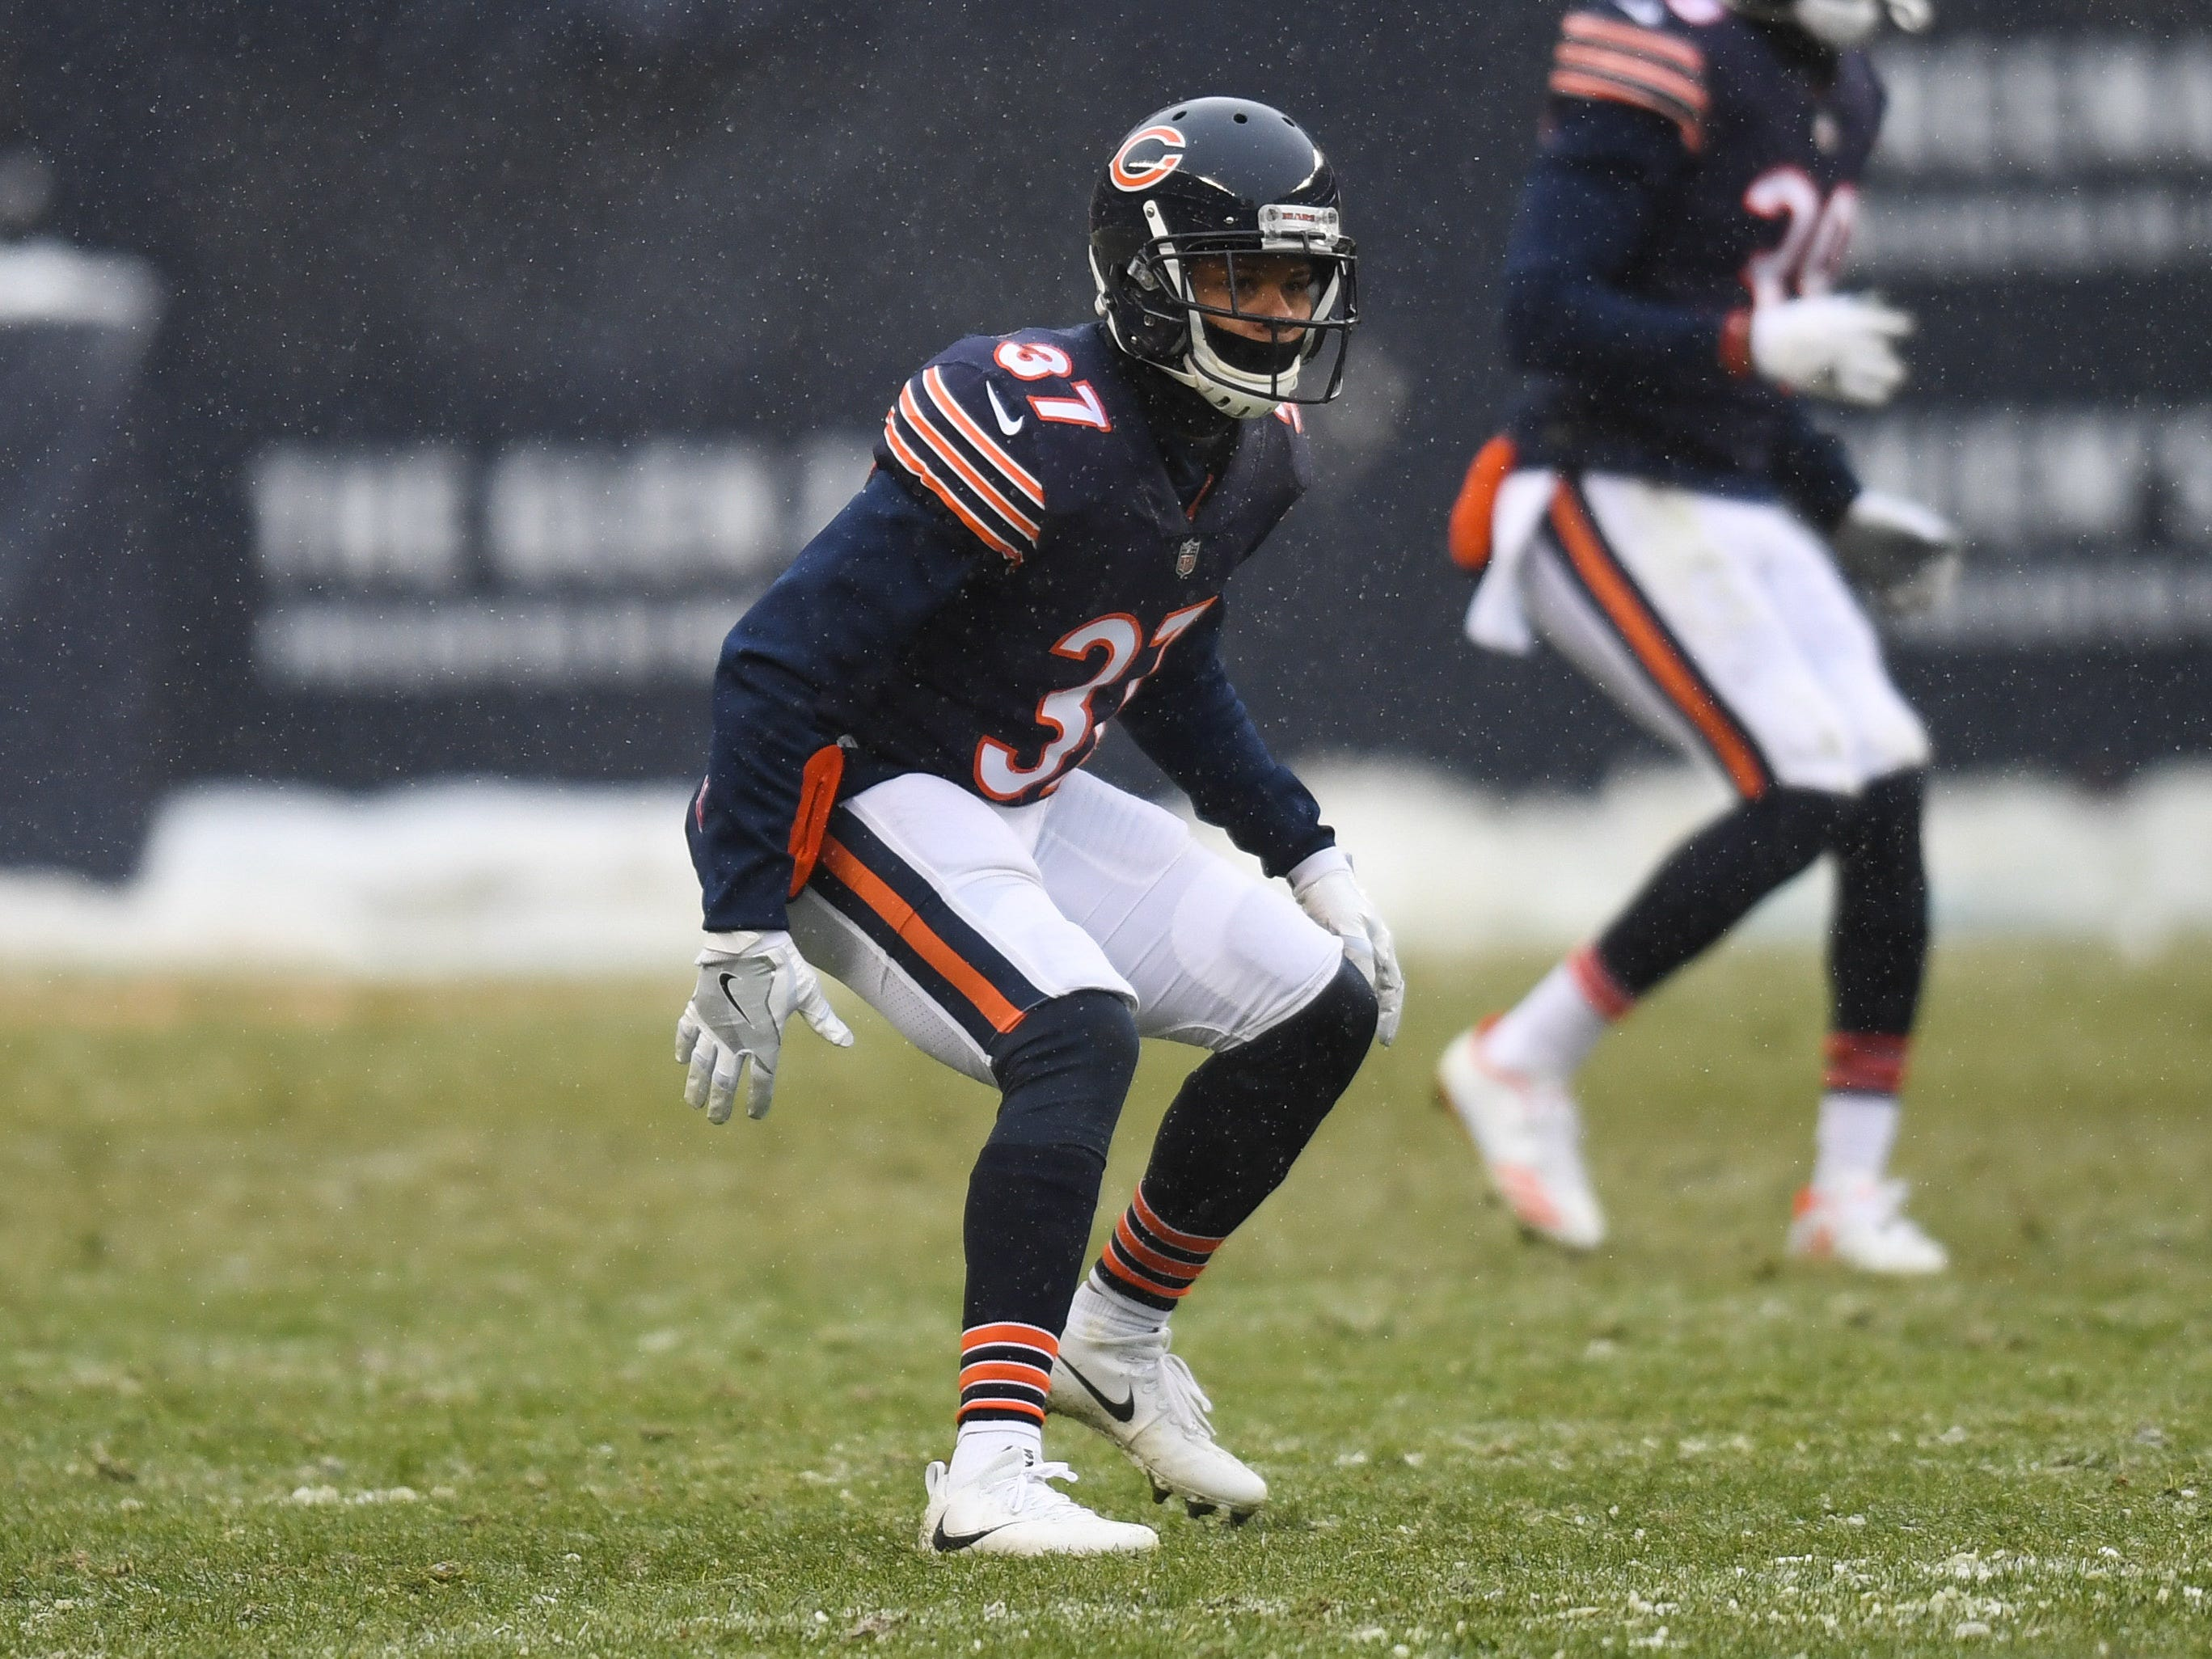 13. Bryce Callahan, CB, Bears: Agreed to deal with Broncos